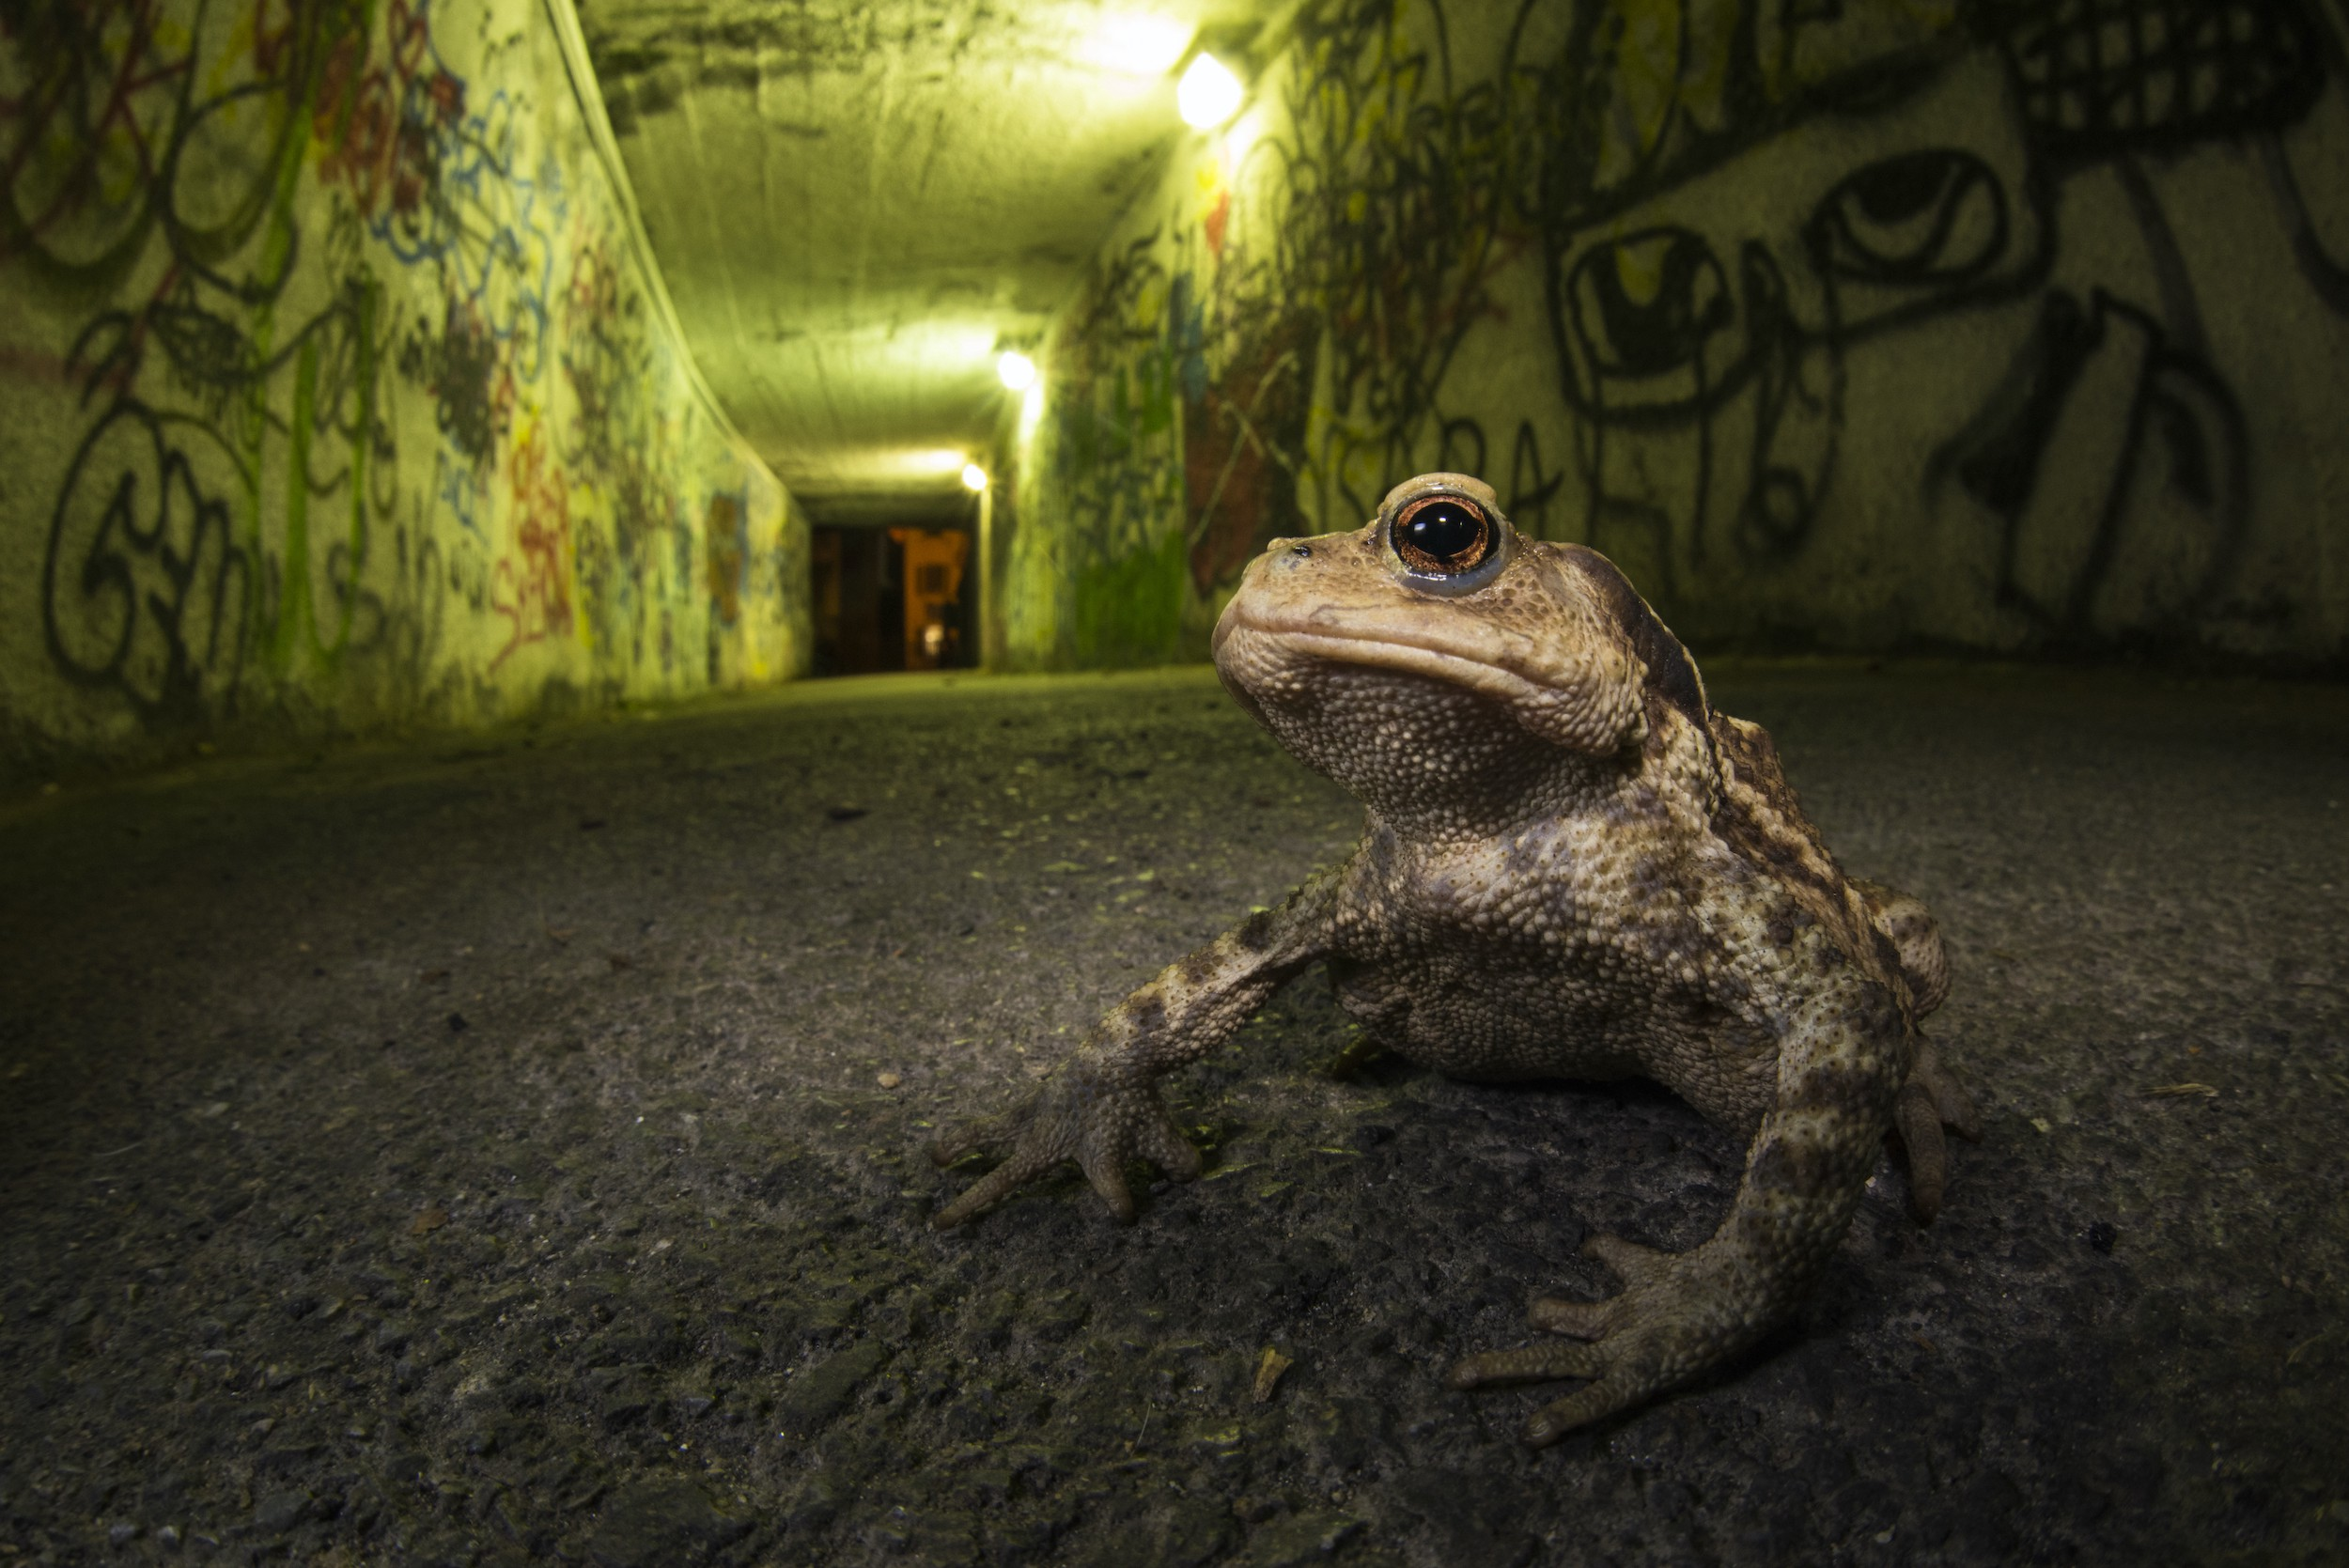 A toad, photographed at his own level, looks tough in a tunnel lit with yellow light and covered in graffiti